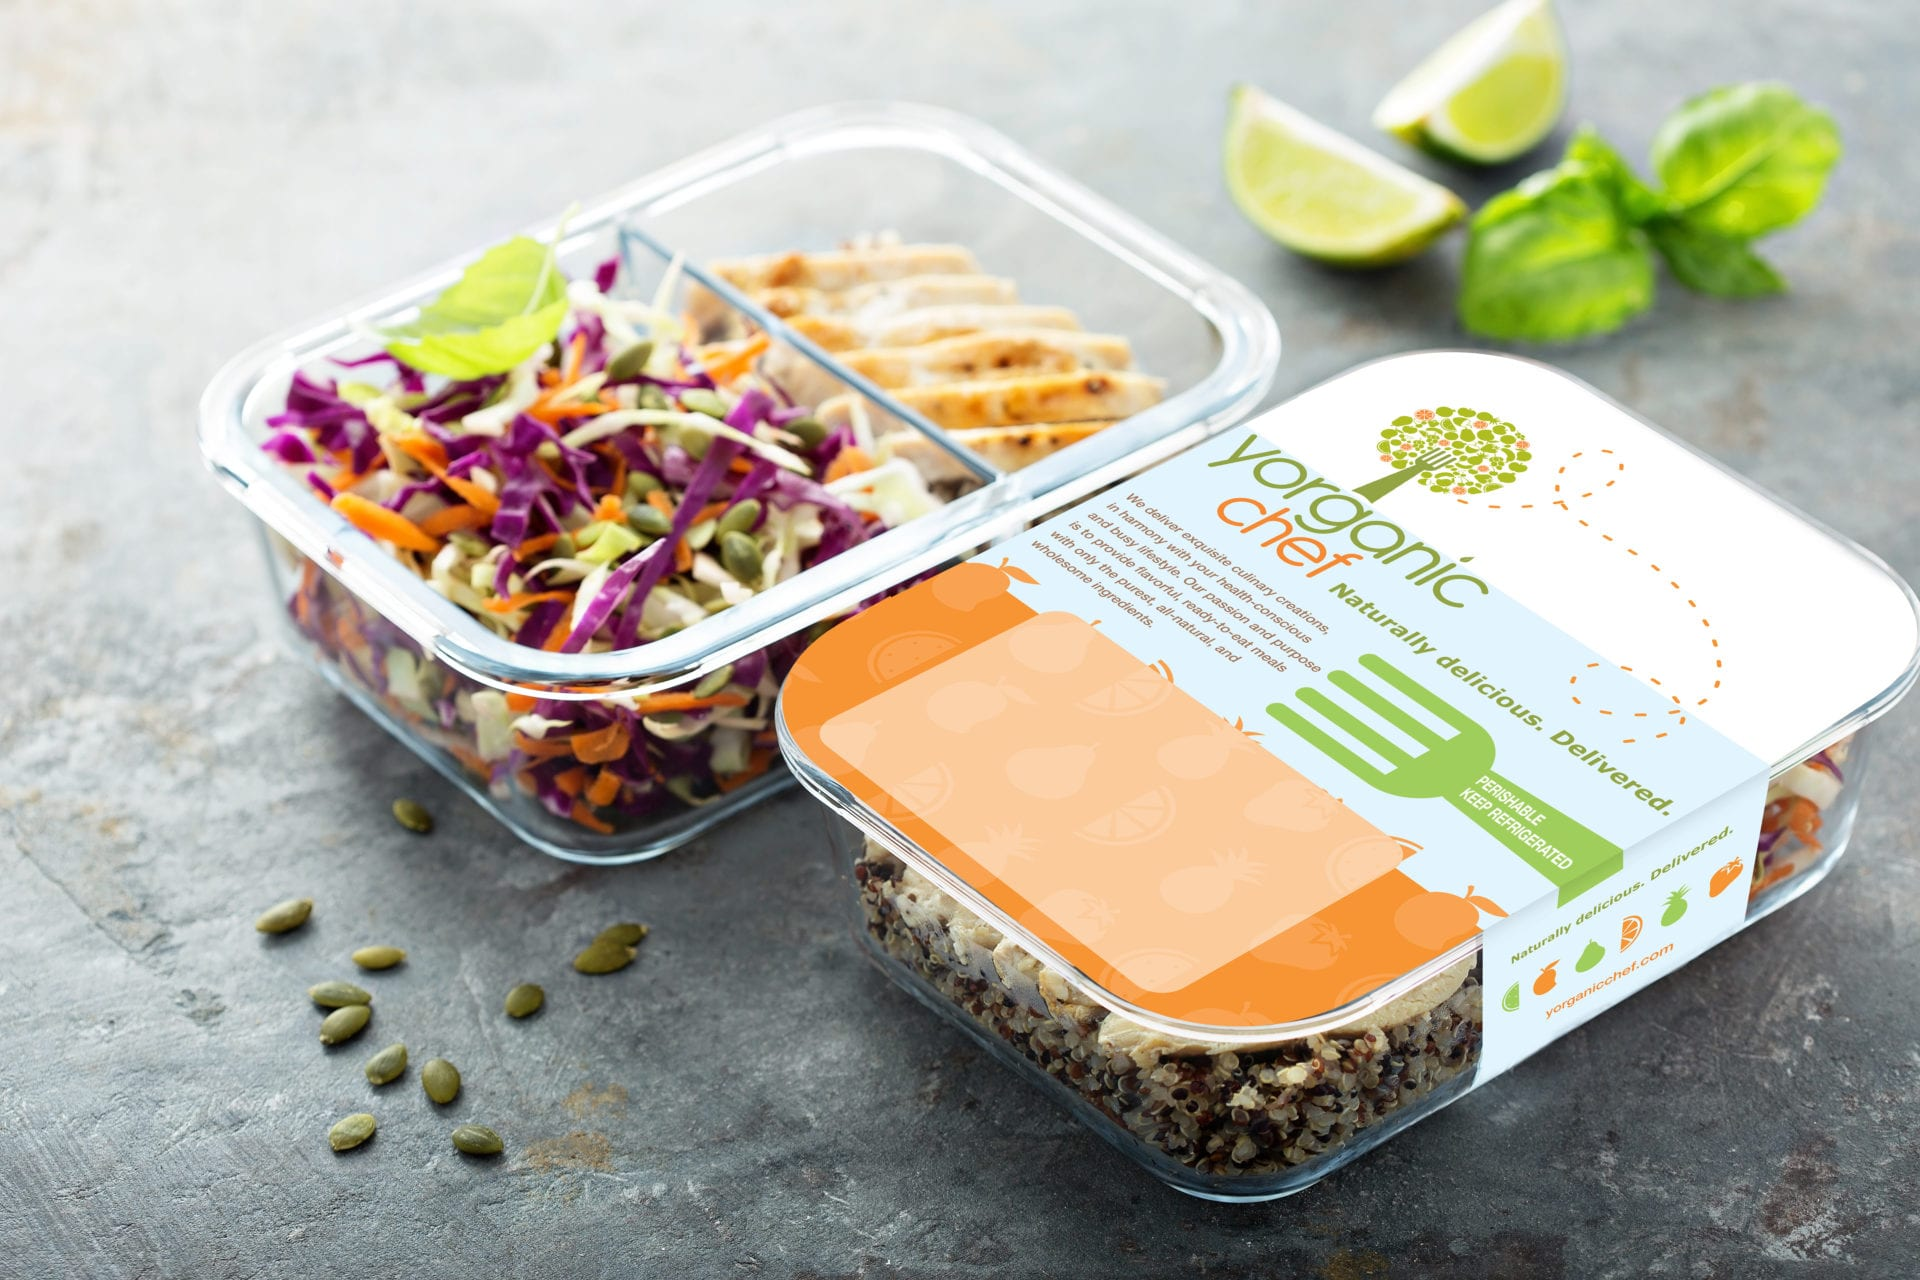 The Yorganic Chef salad box